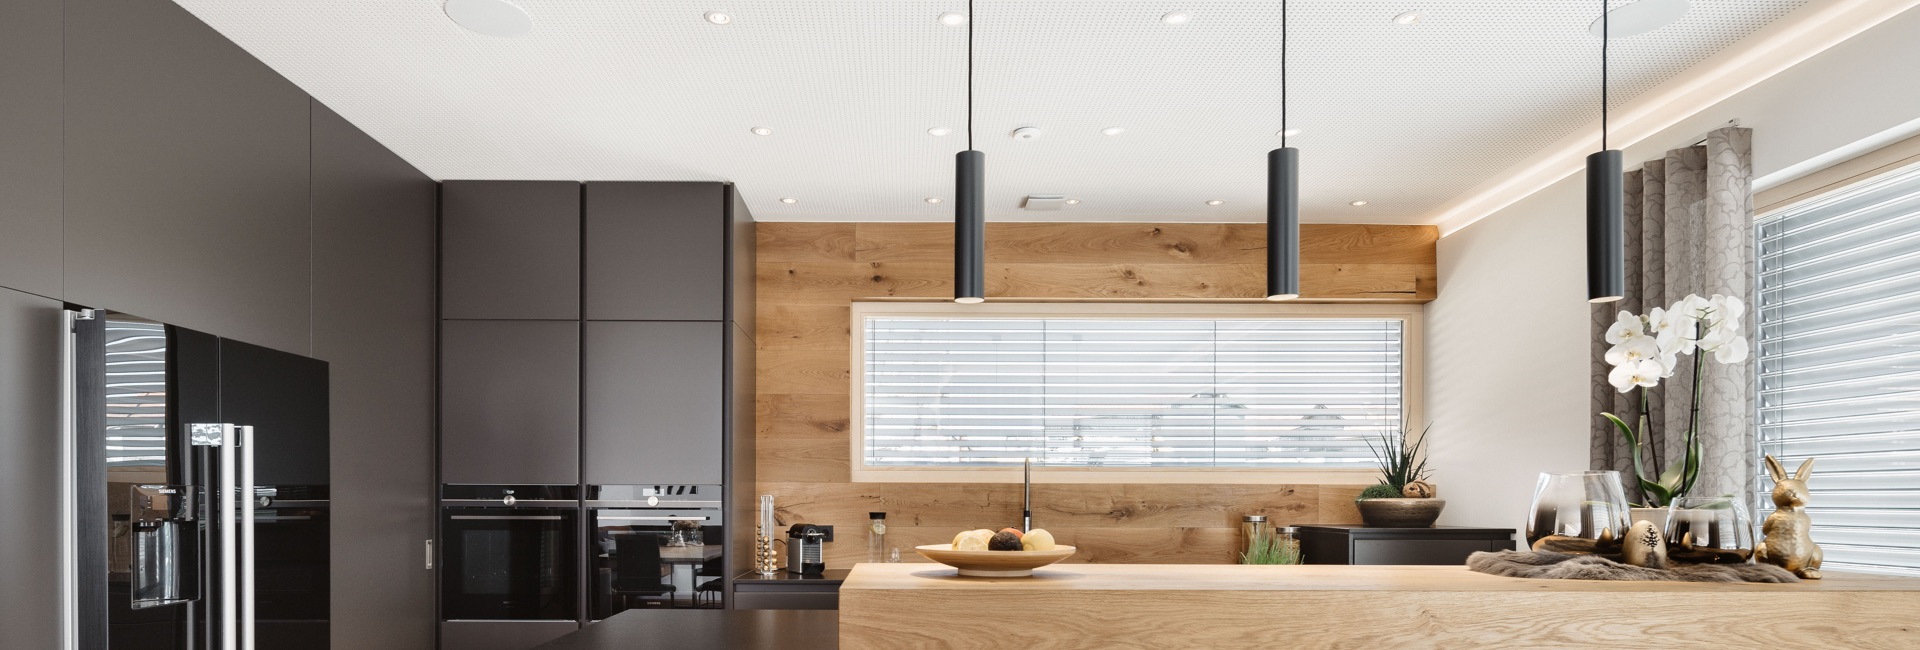 Beispiel Smart Home Licht